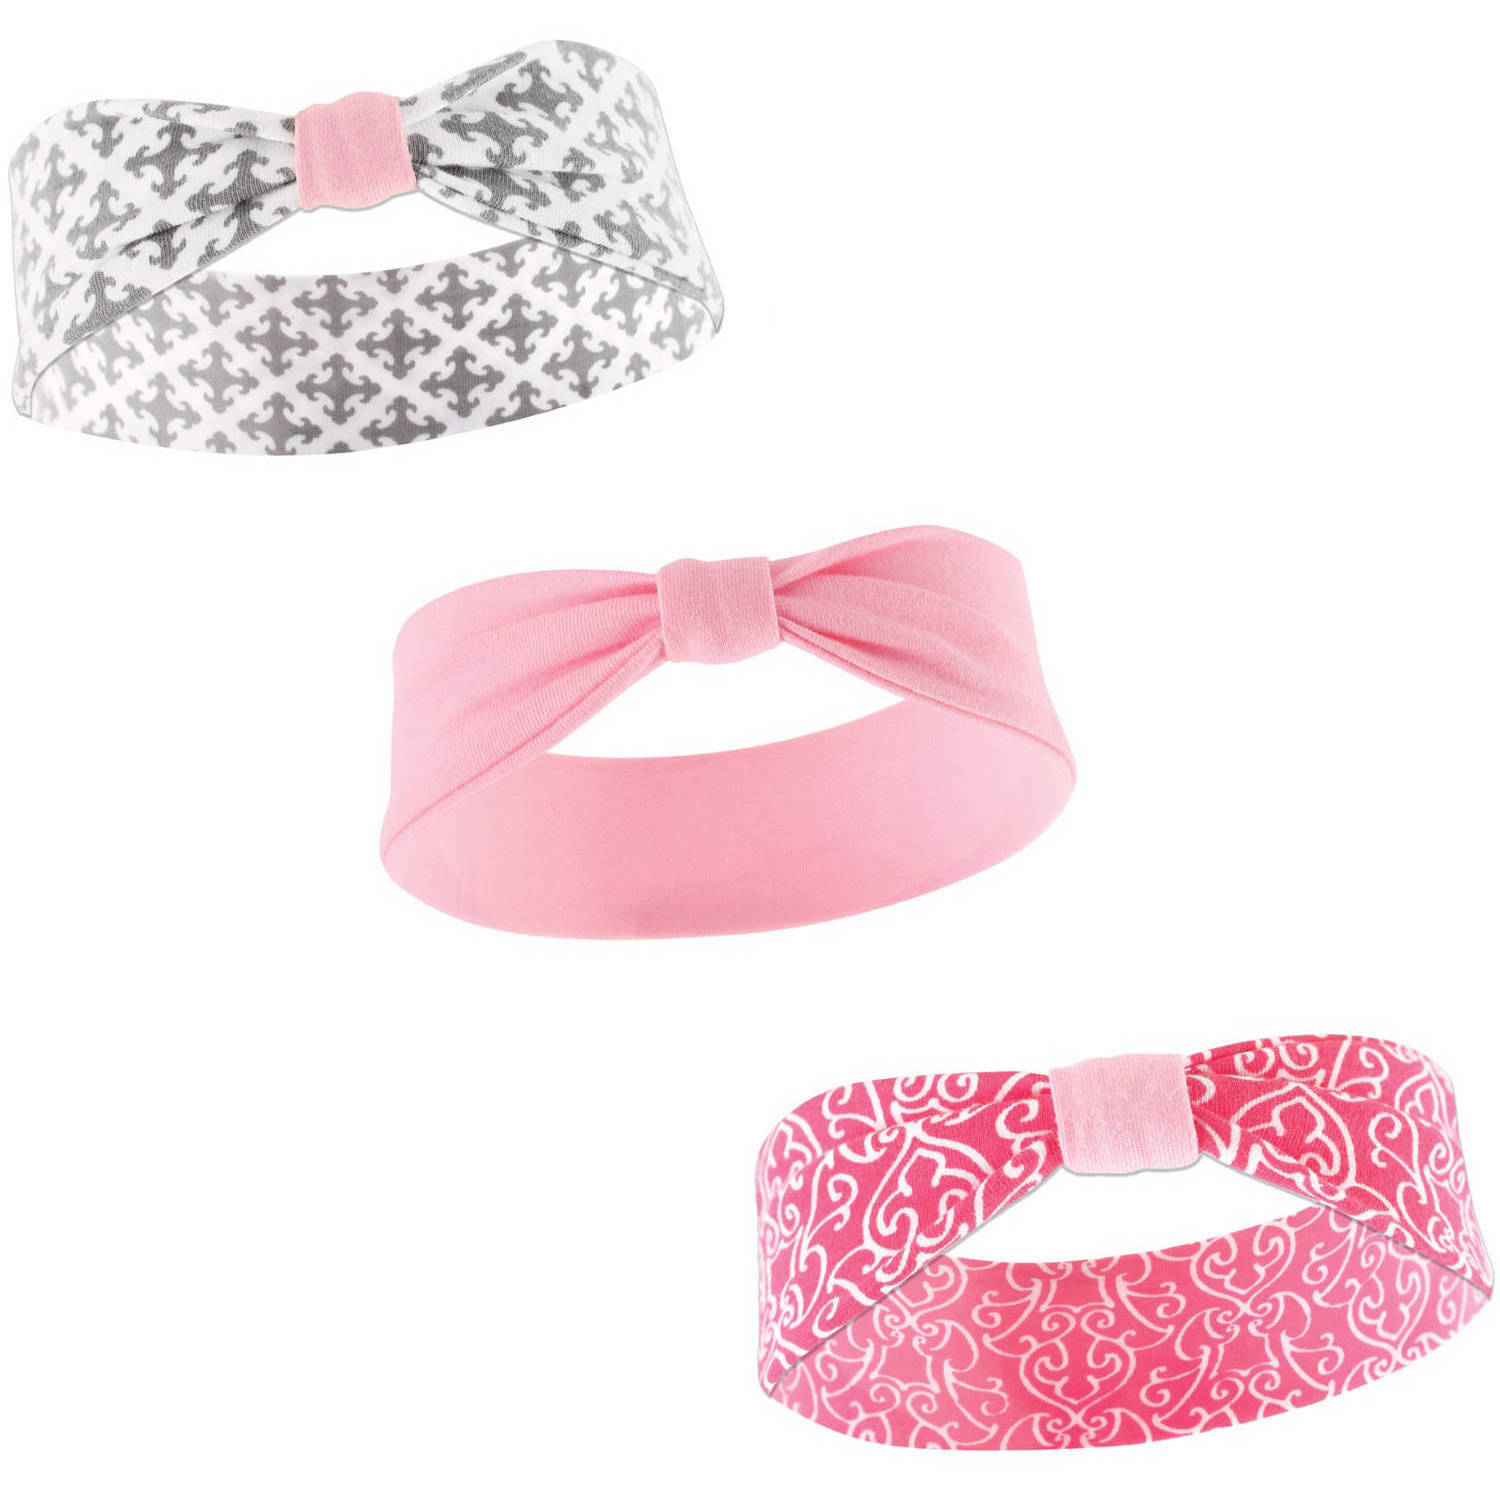 Yoga Sprout Newborn Baby Girls Headband 3-Pack - Demask